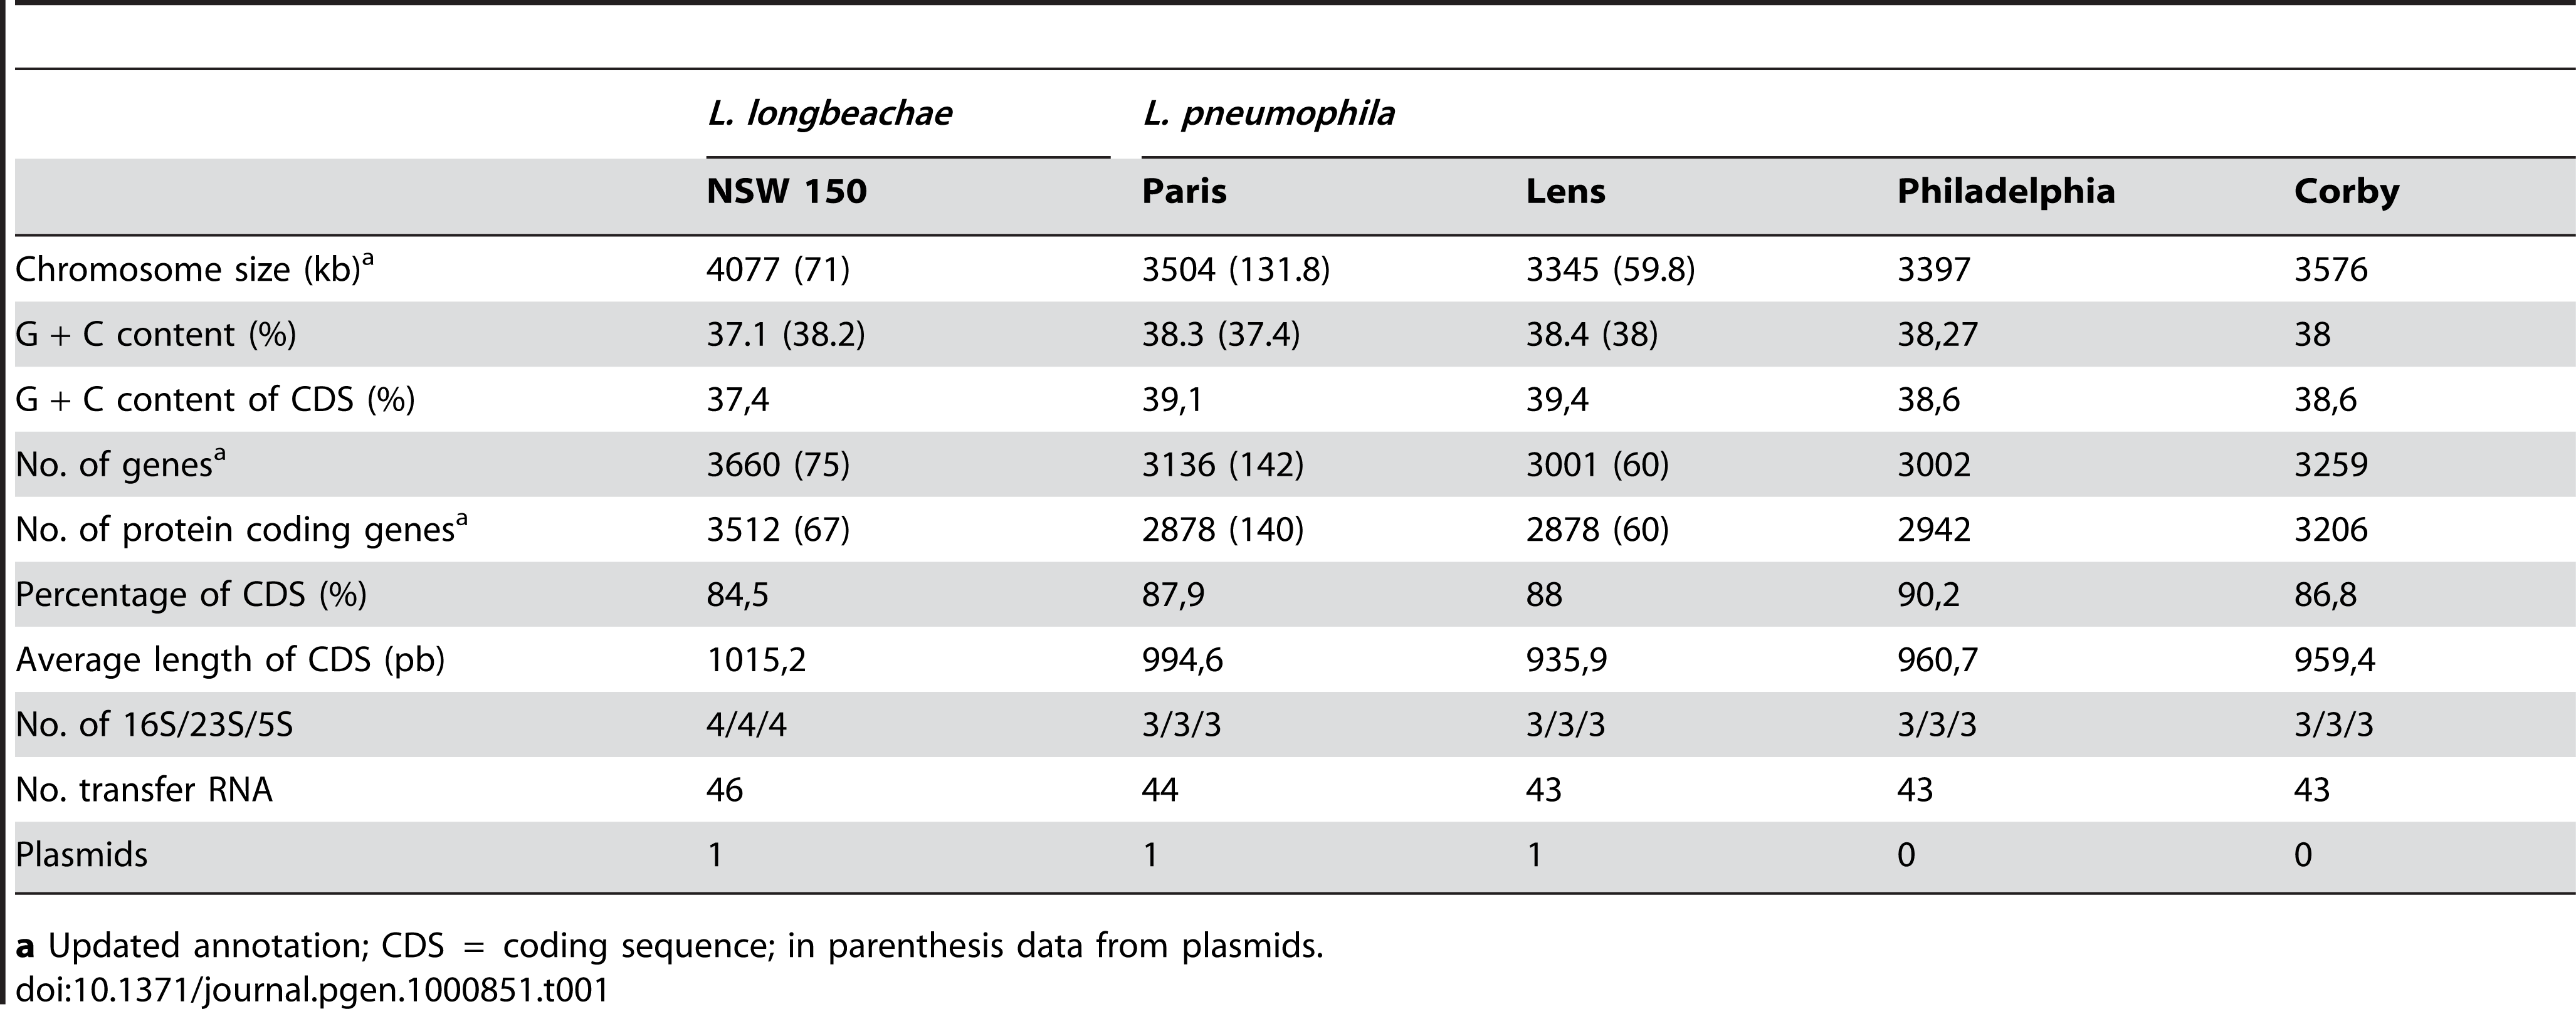 General features of the completely sequenced <i>L. pneumophila</i> and <i>L. longbeachae</i> genomes.